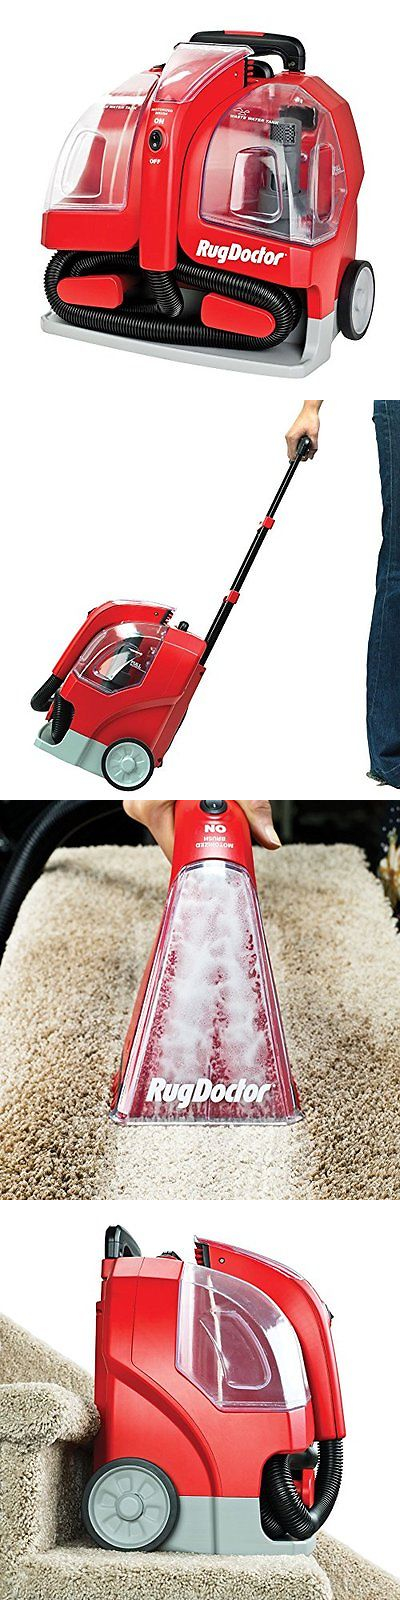 Carpet Shampooers 177746: Rug Doctor Home Kitchen Features Portable Spot  Cleaner Machine, Red Corded